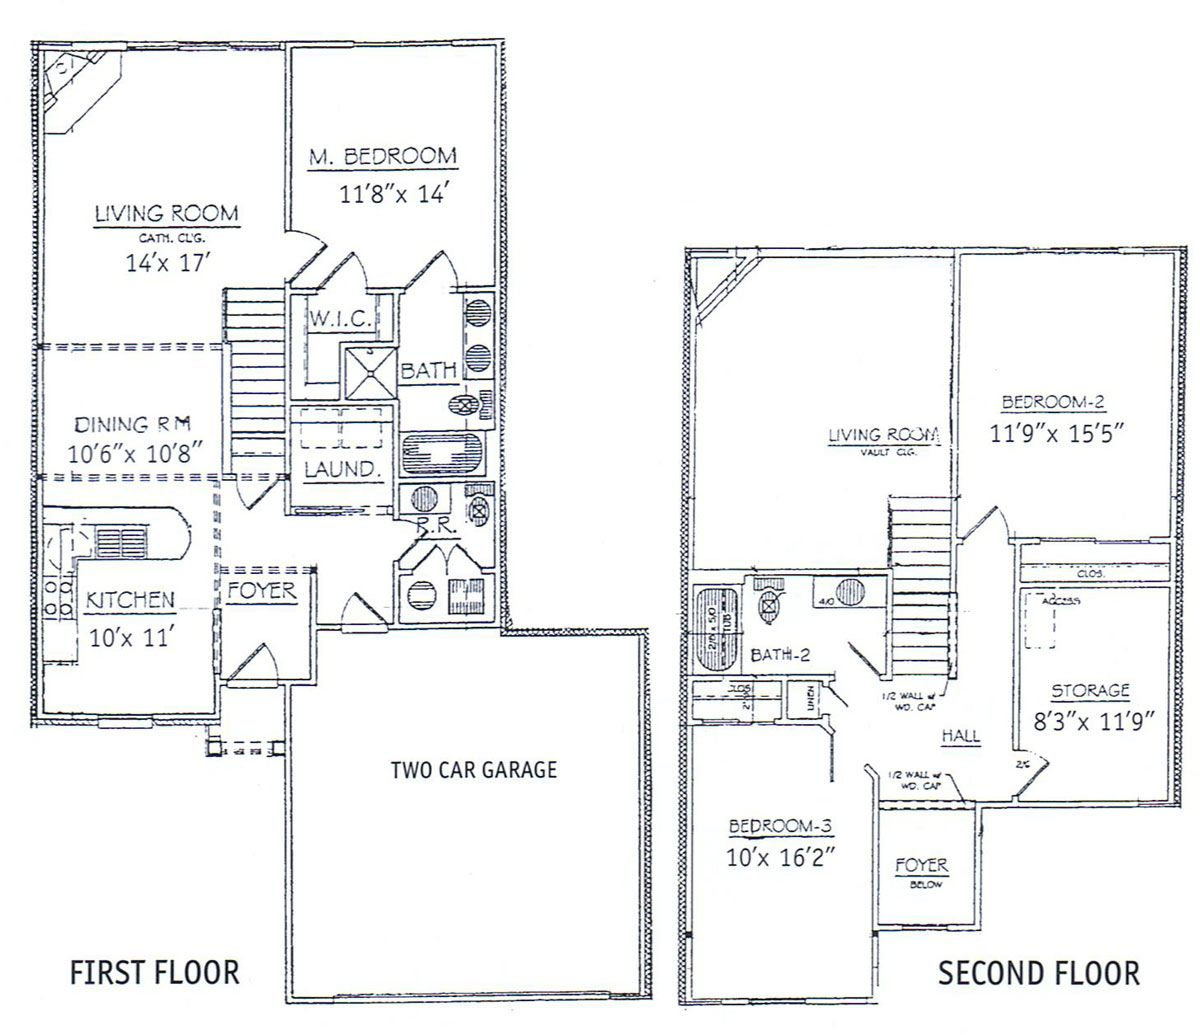 3 bedrooms floor plans 2 story bdrm basement the two for House plan generator